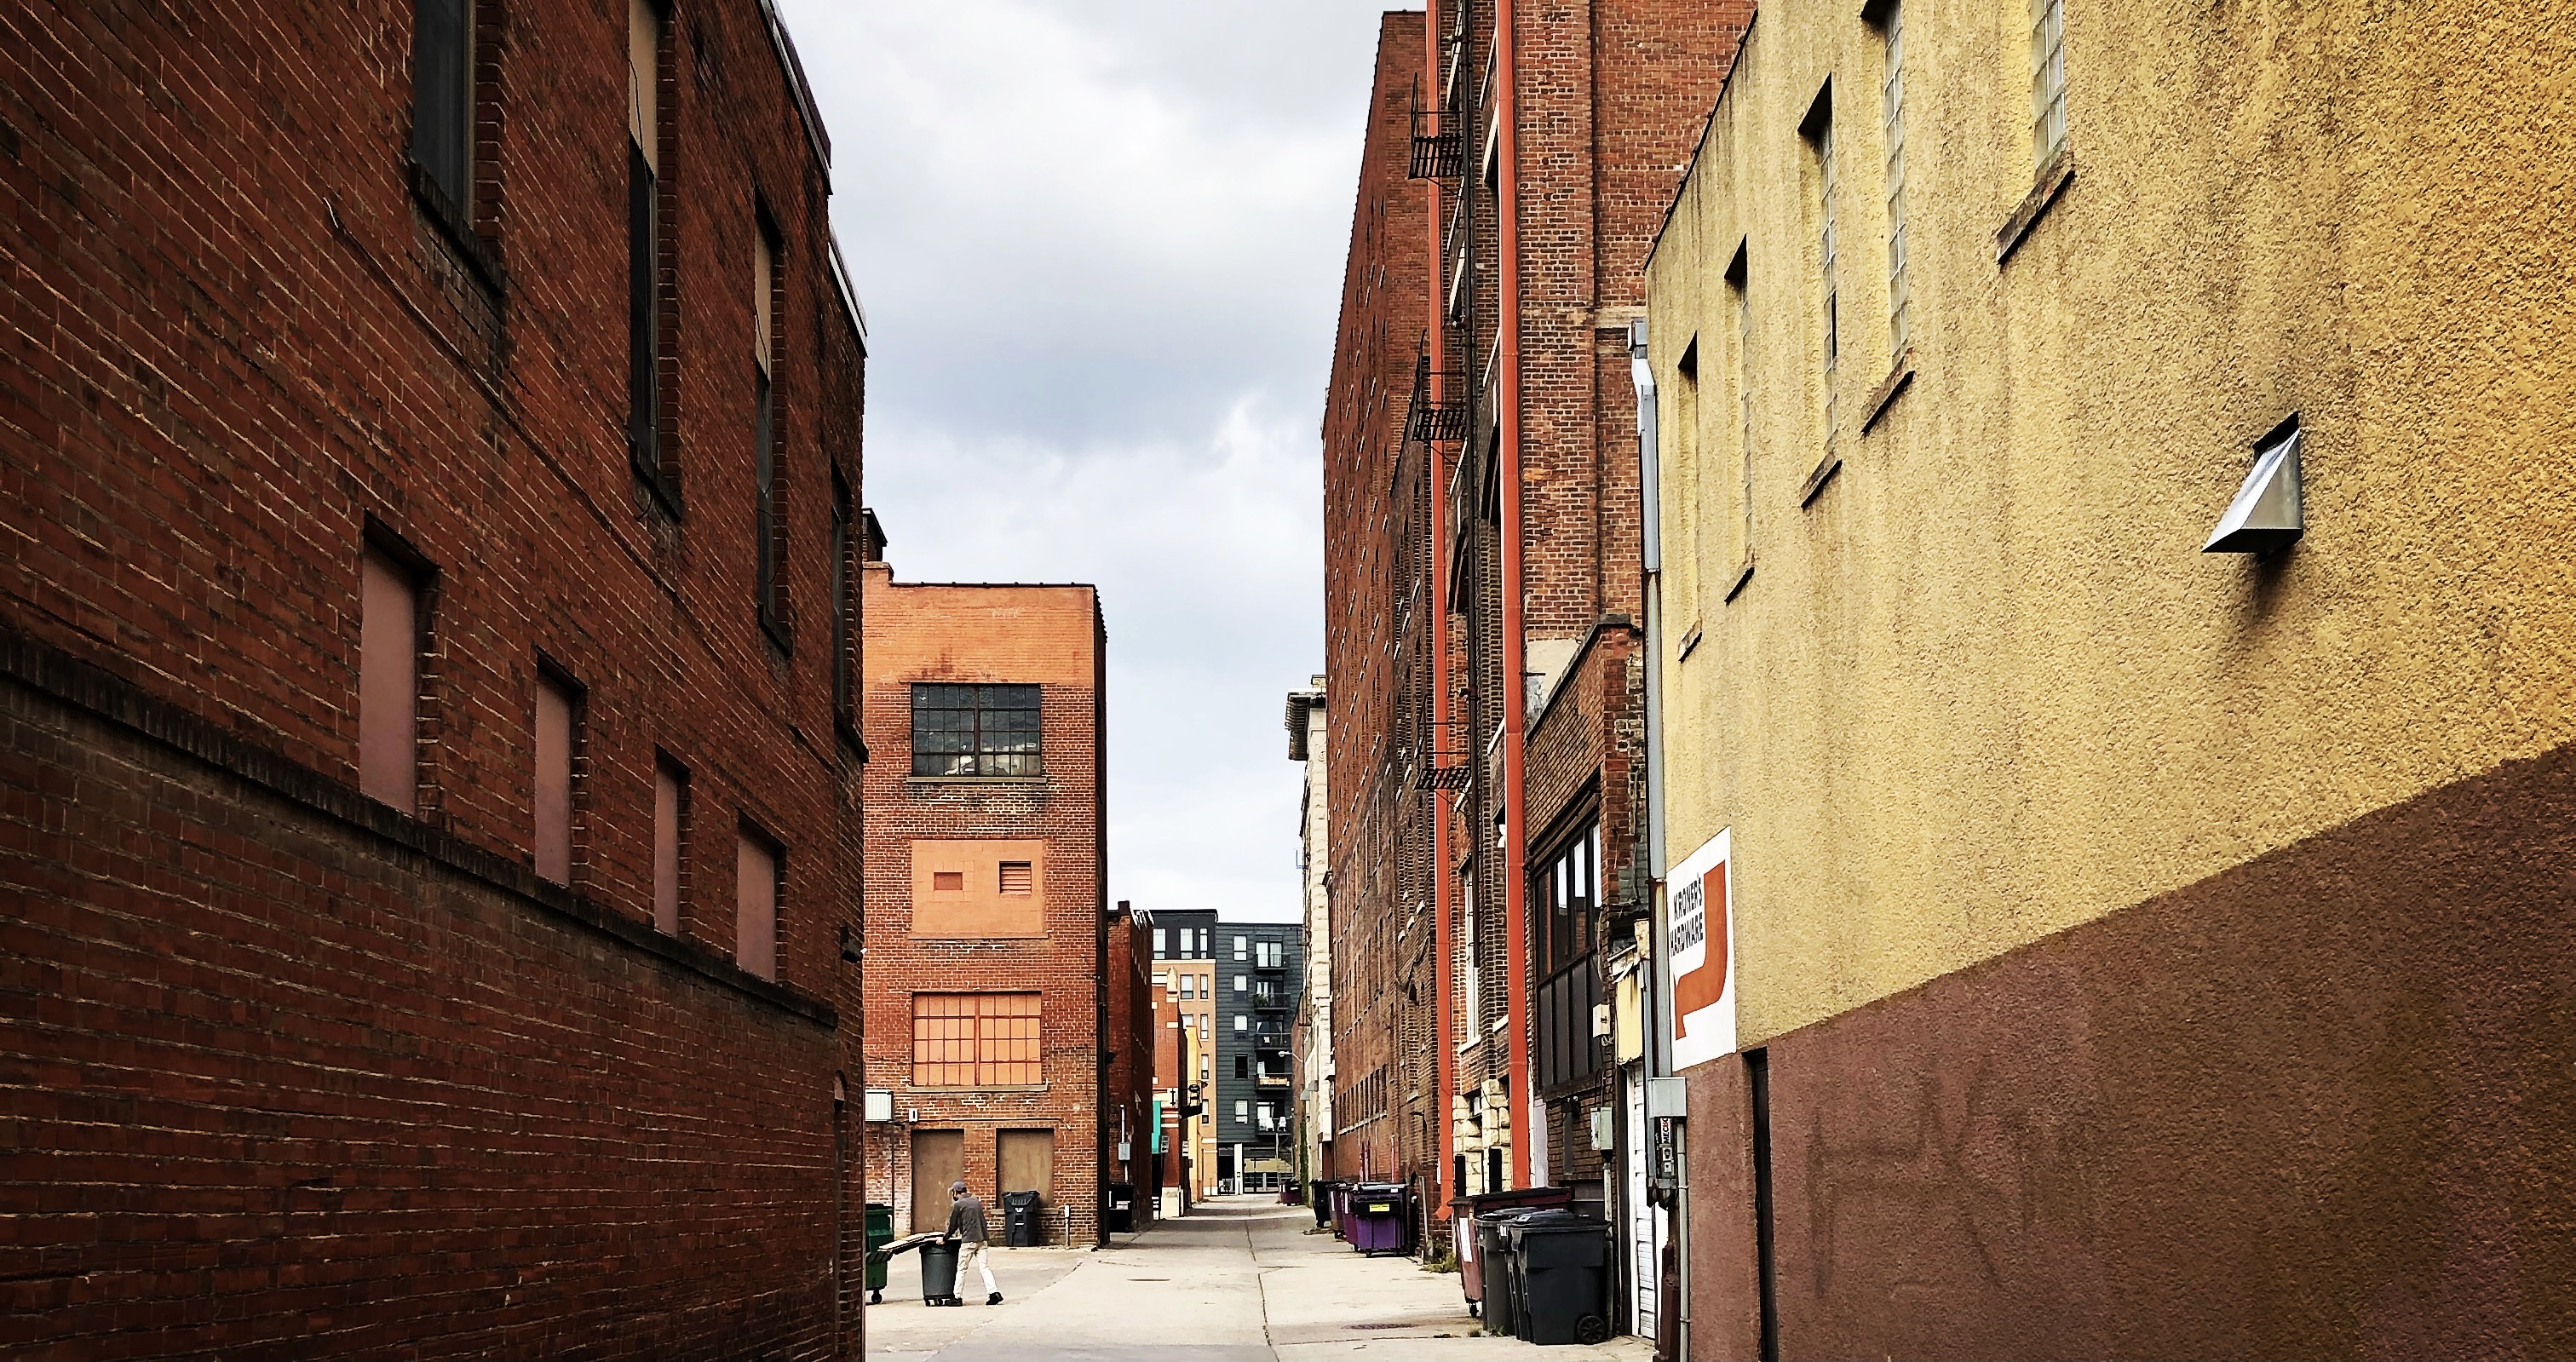 Photo of alley way with mid-size buildings on both sides in an urban setting.